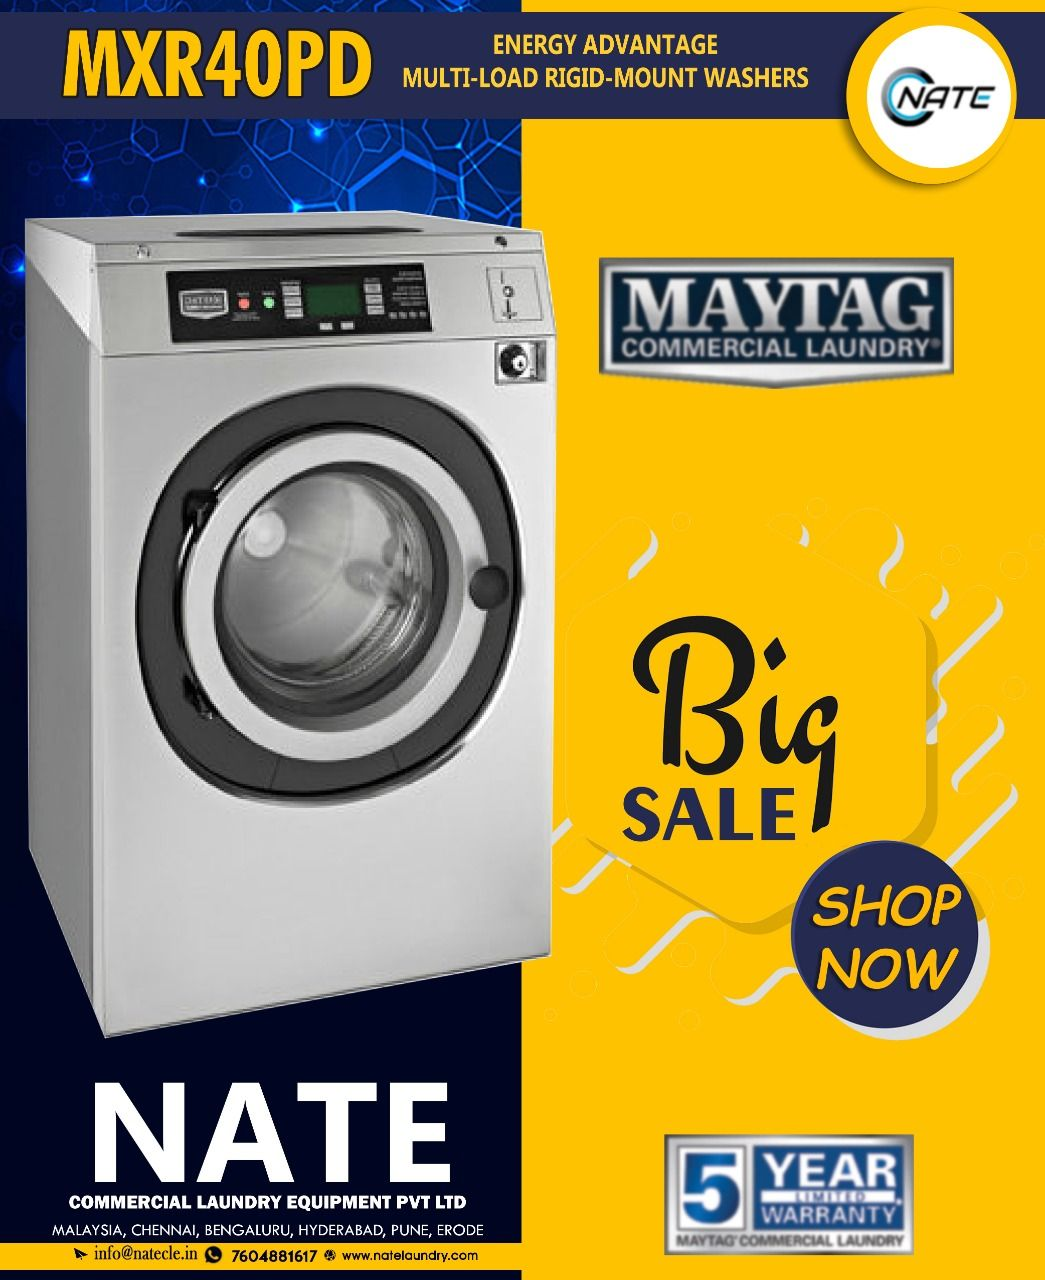 Shop Imported Maytag 15kg Washer For Sale Maytag Usa Commercial Laundry 10 Off 5 Year Warranty Get O Commercial Laundry Laundry Equipment Laundry